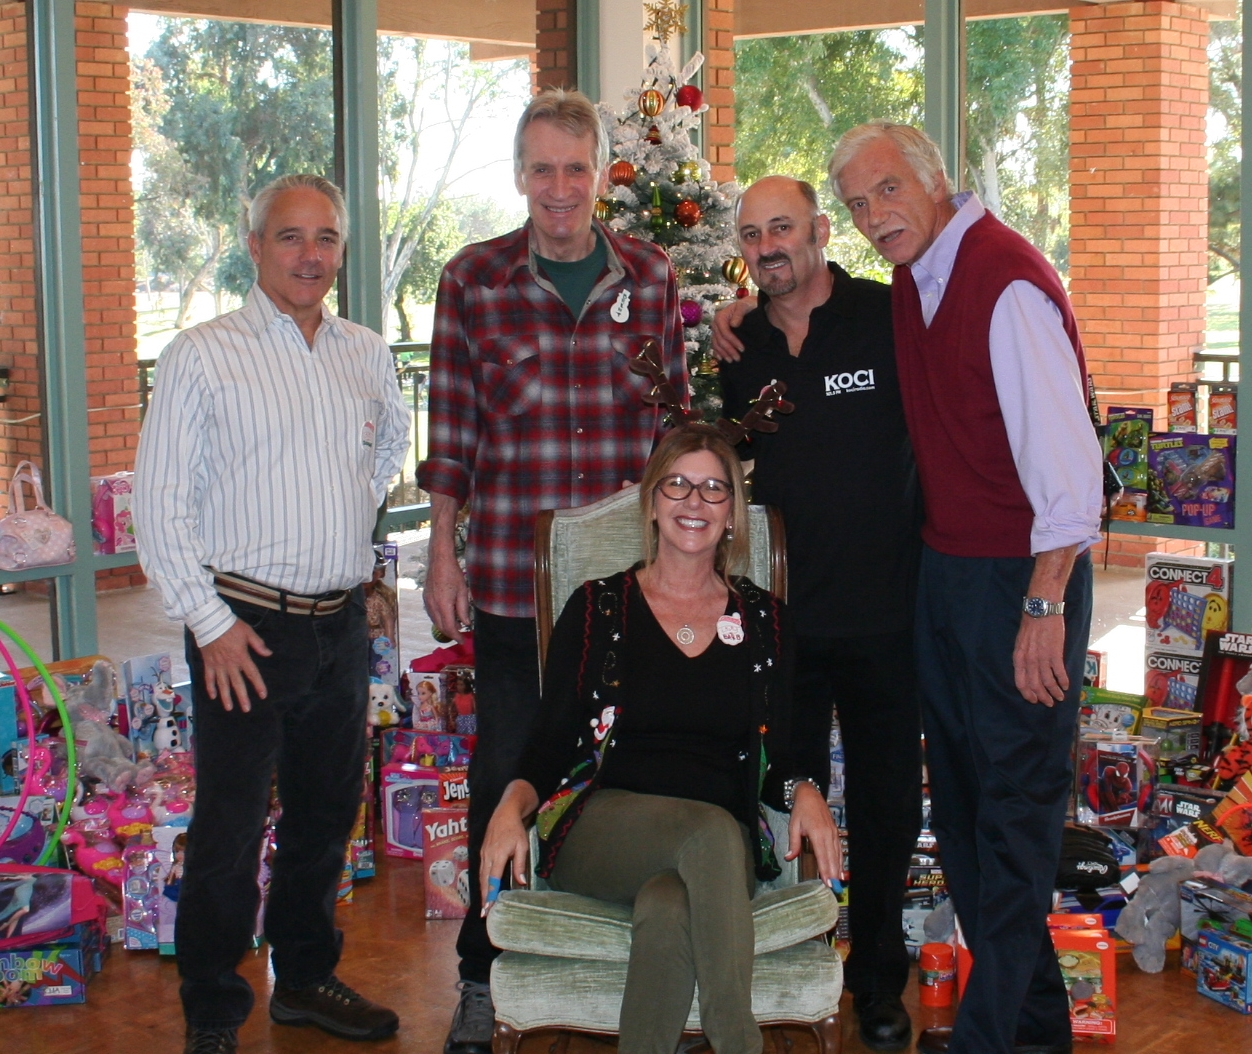 KOCI staff L-R; Doug Bender, Brent Kahlen, Tom Neas, Brian Helvey and Barbara Davis seated